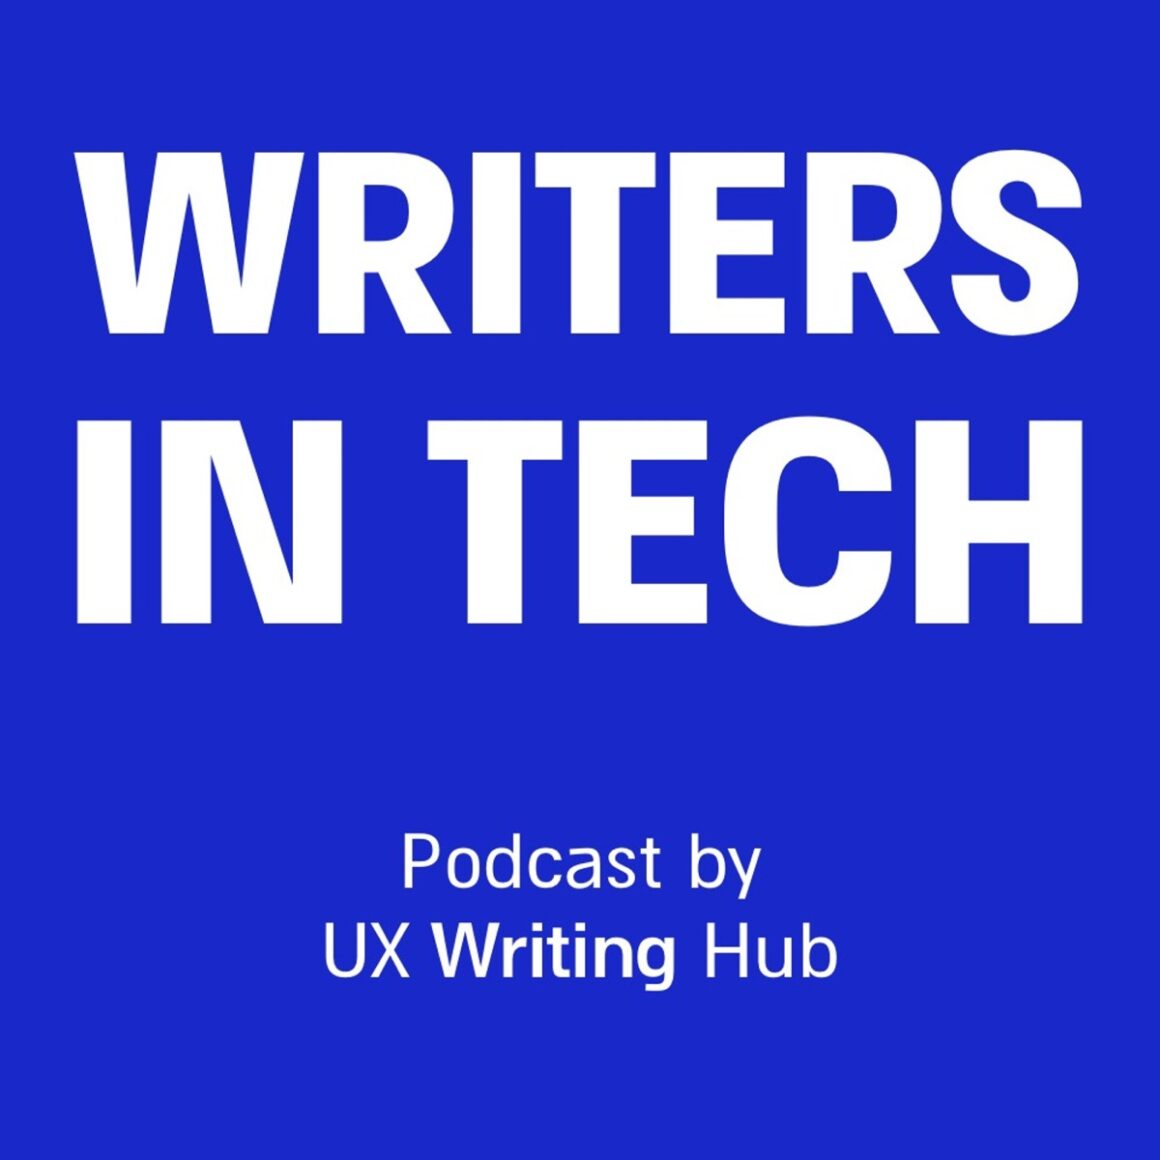 ux podcasts  writers in tech